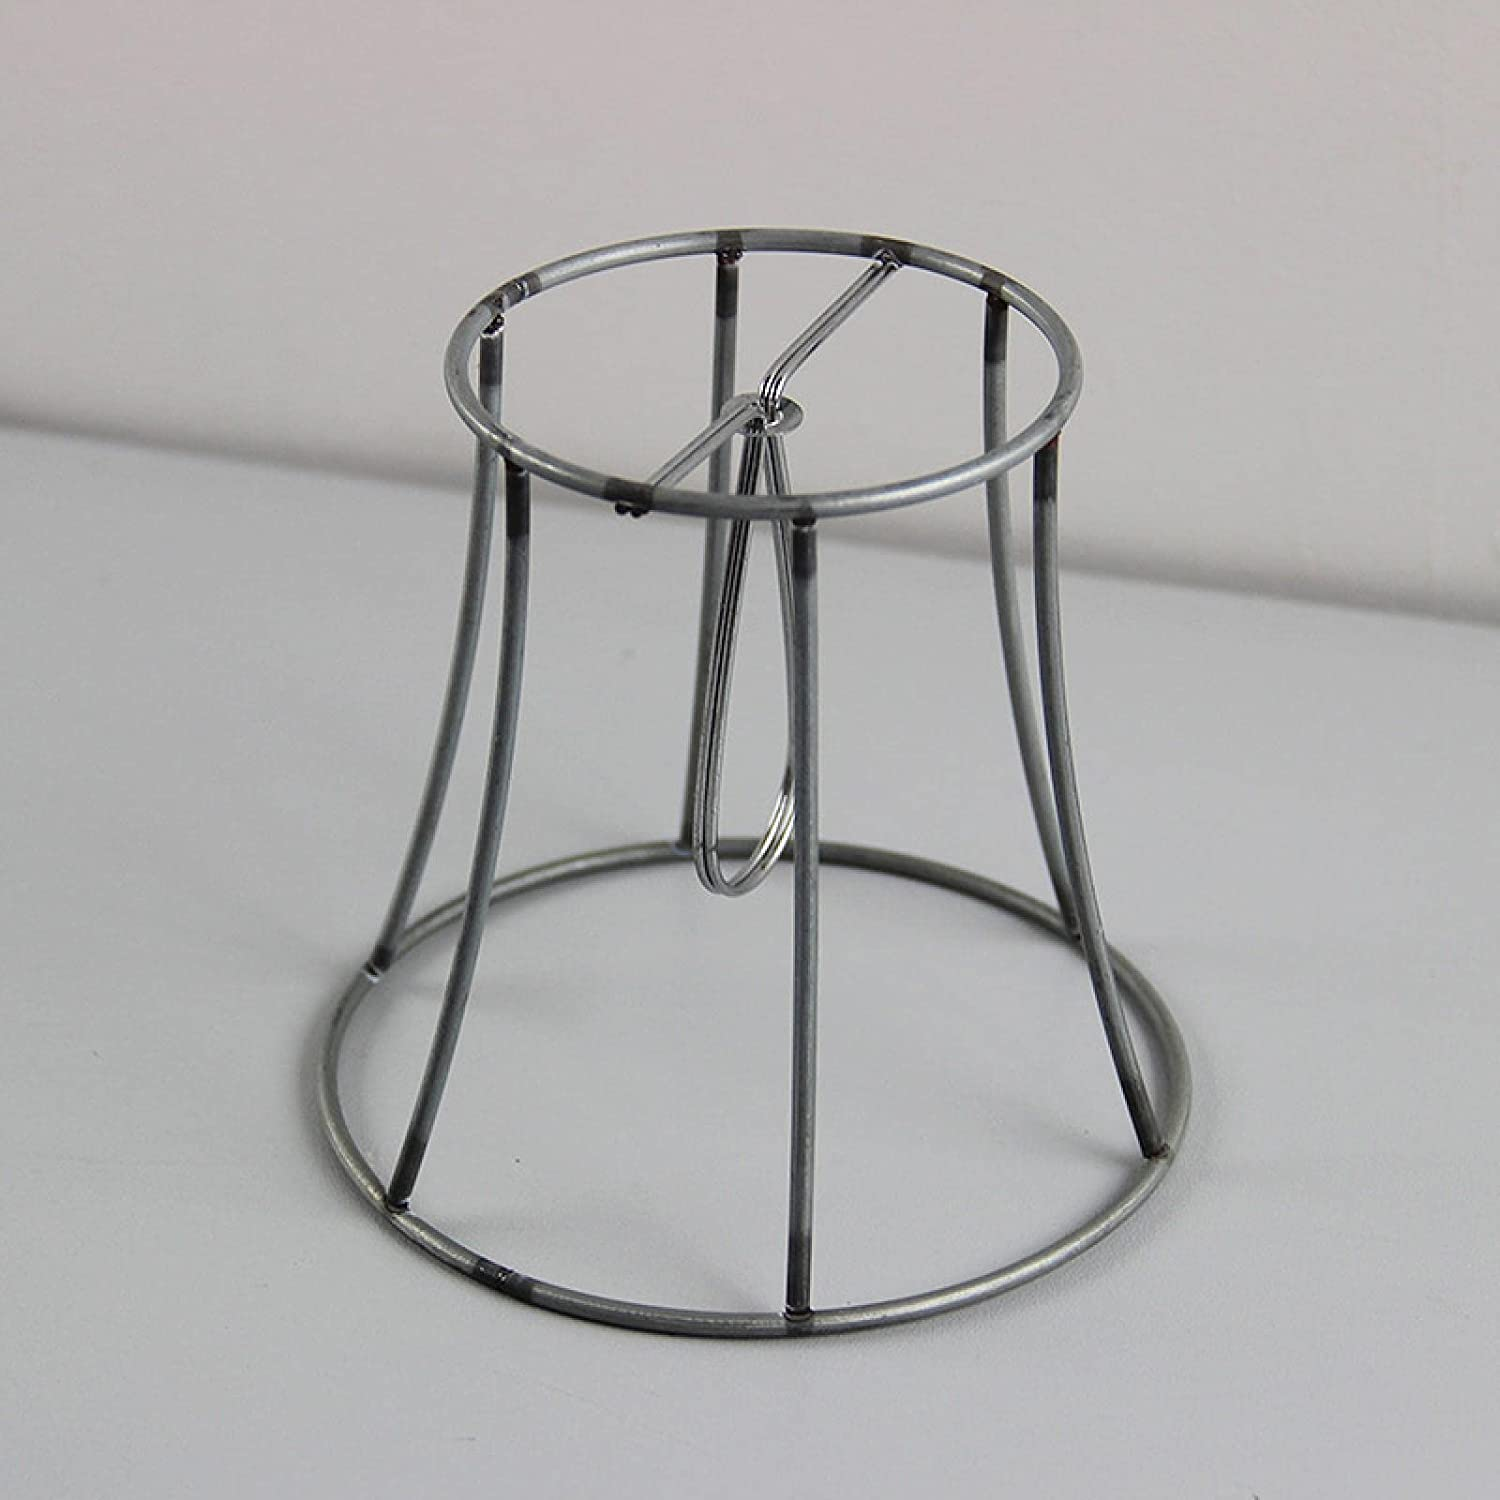 Max 87% OFF Lampshade Frame Max 88% OFF Ring 4.72in Iron Art DIY Co Lamp